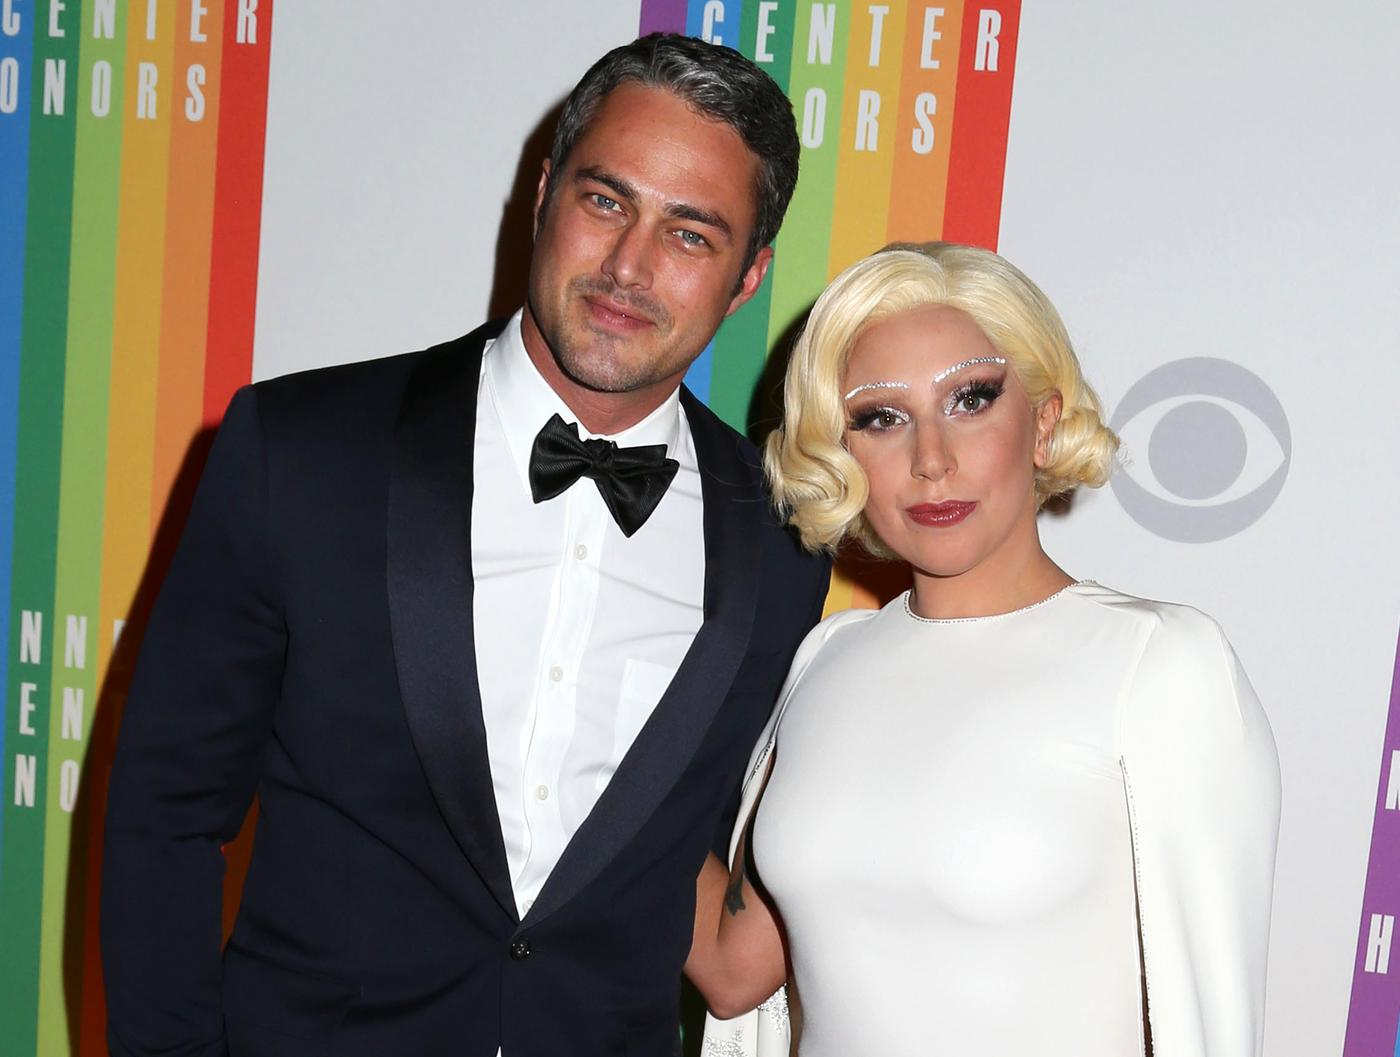 'He gave me his heart on Valentine's Day, and I said YES!': Lady Gaga engaged to Taylor Kinney after romantic proposal